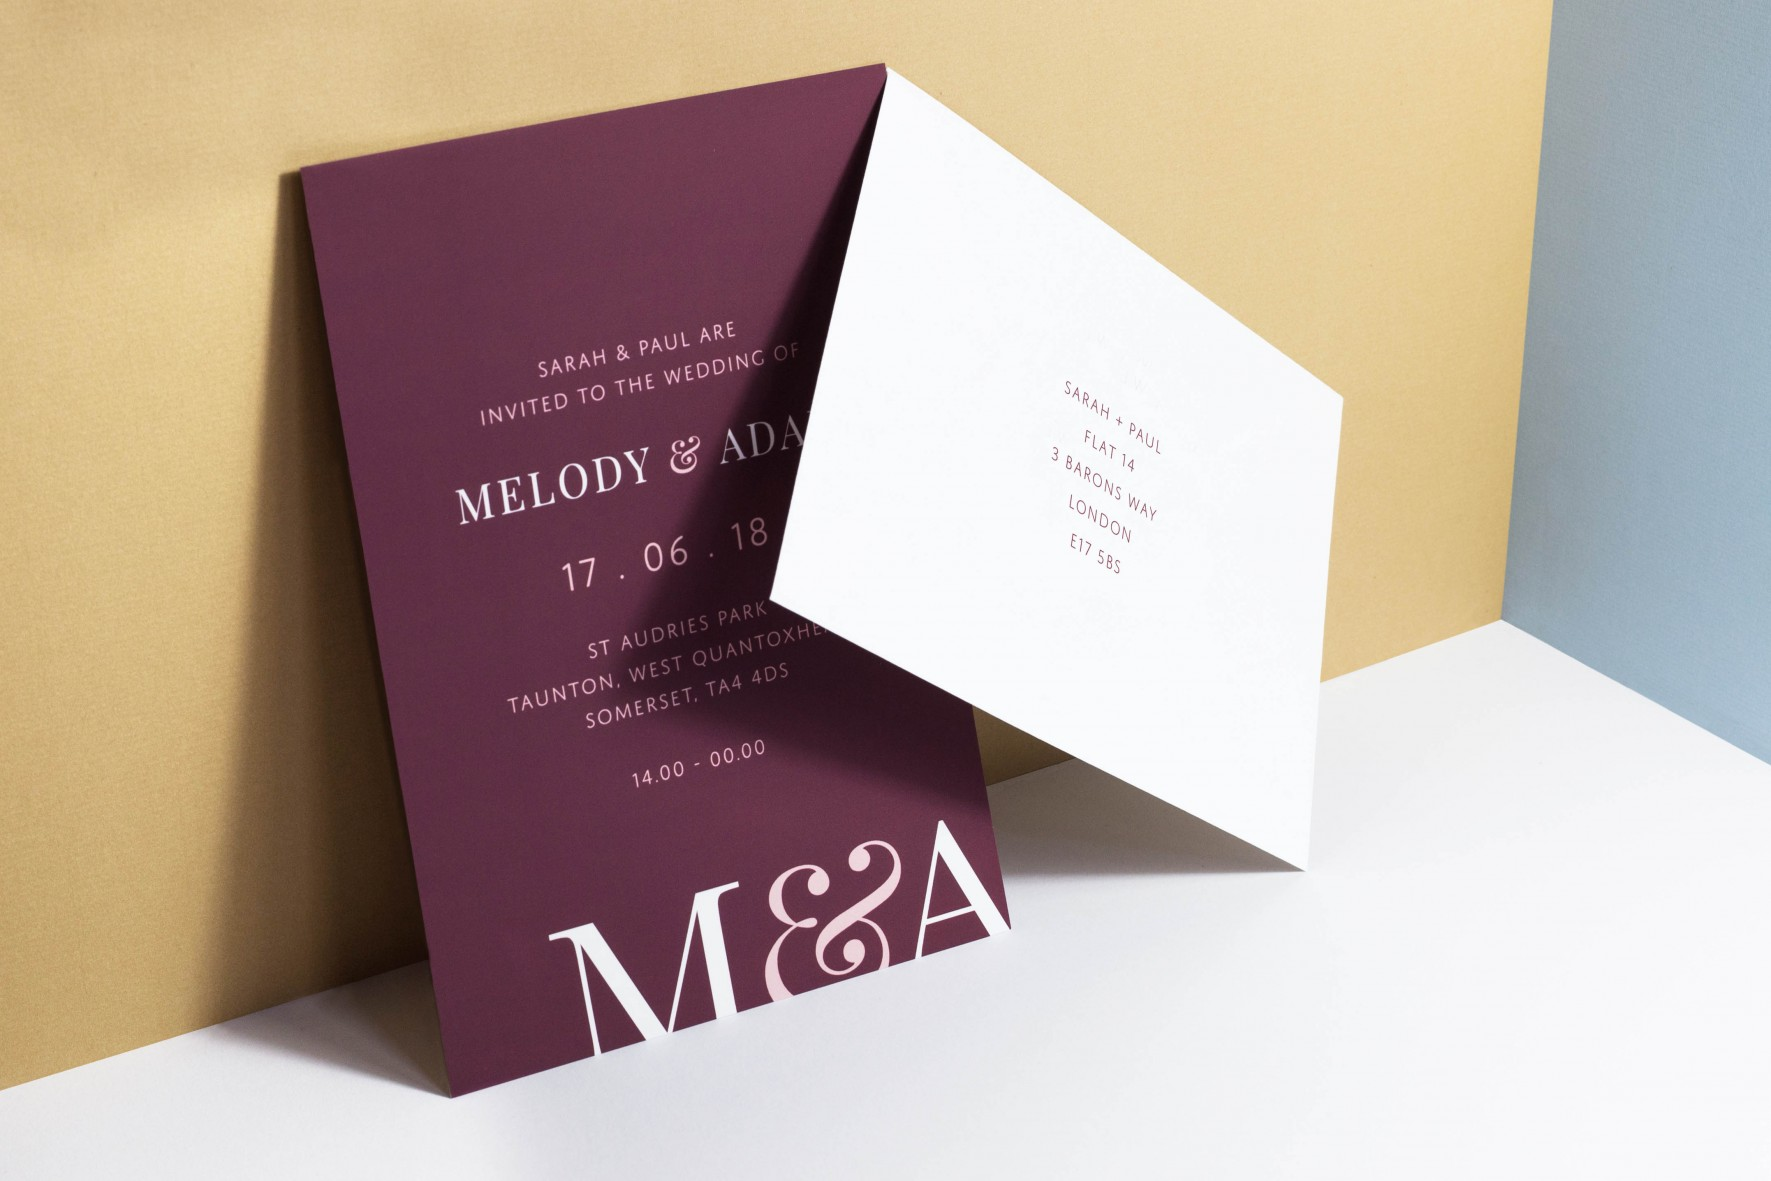 Modern colourful wedding invitation with bold initials - wedding stationery by www.rosepaperscissors.com